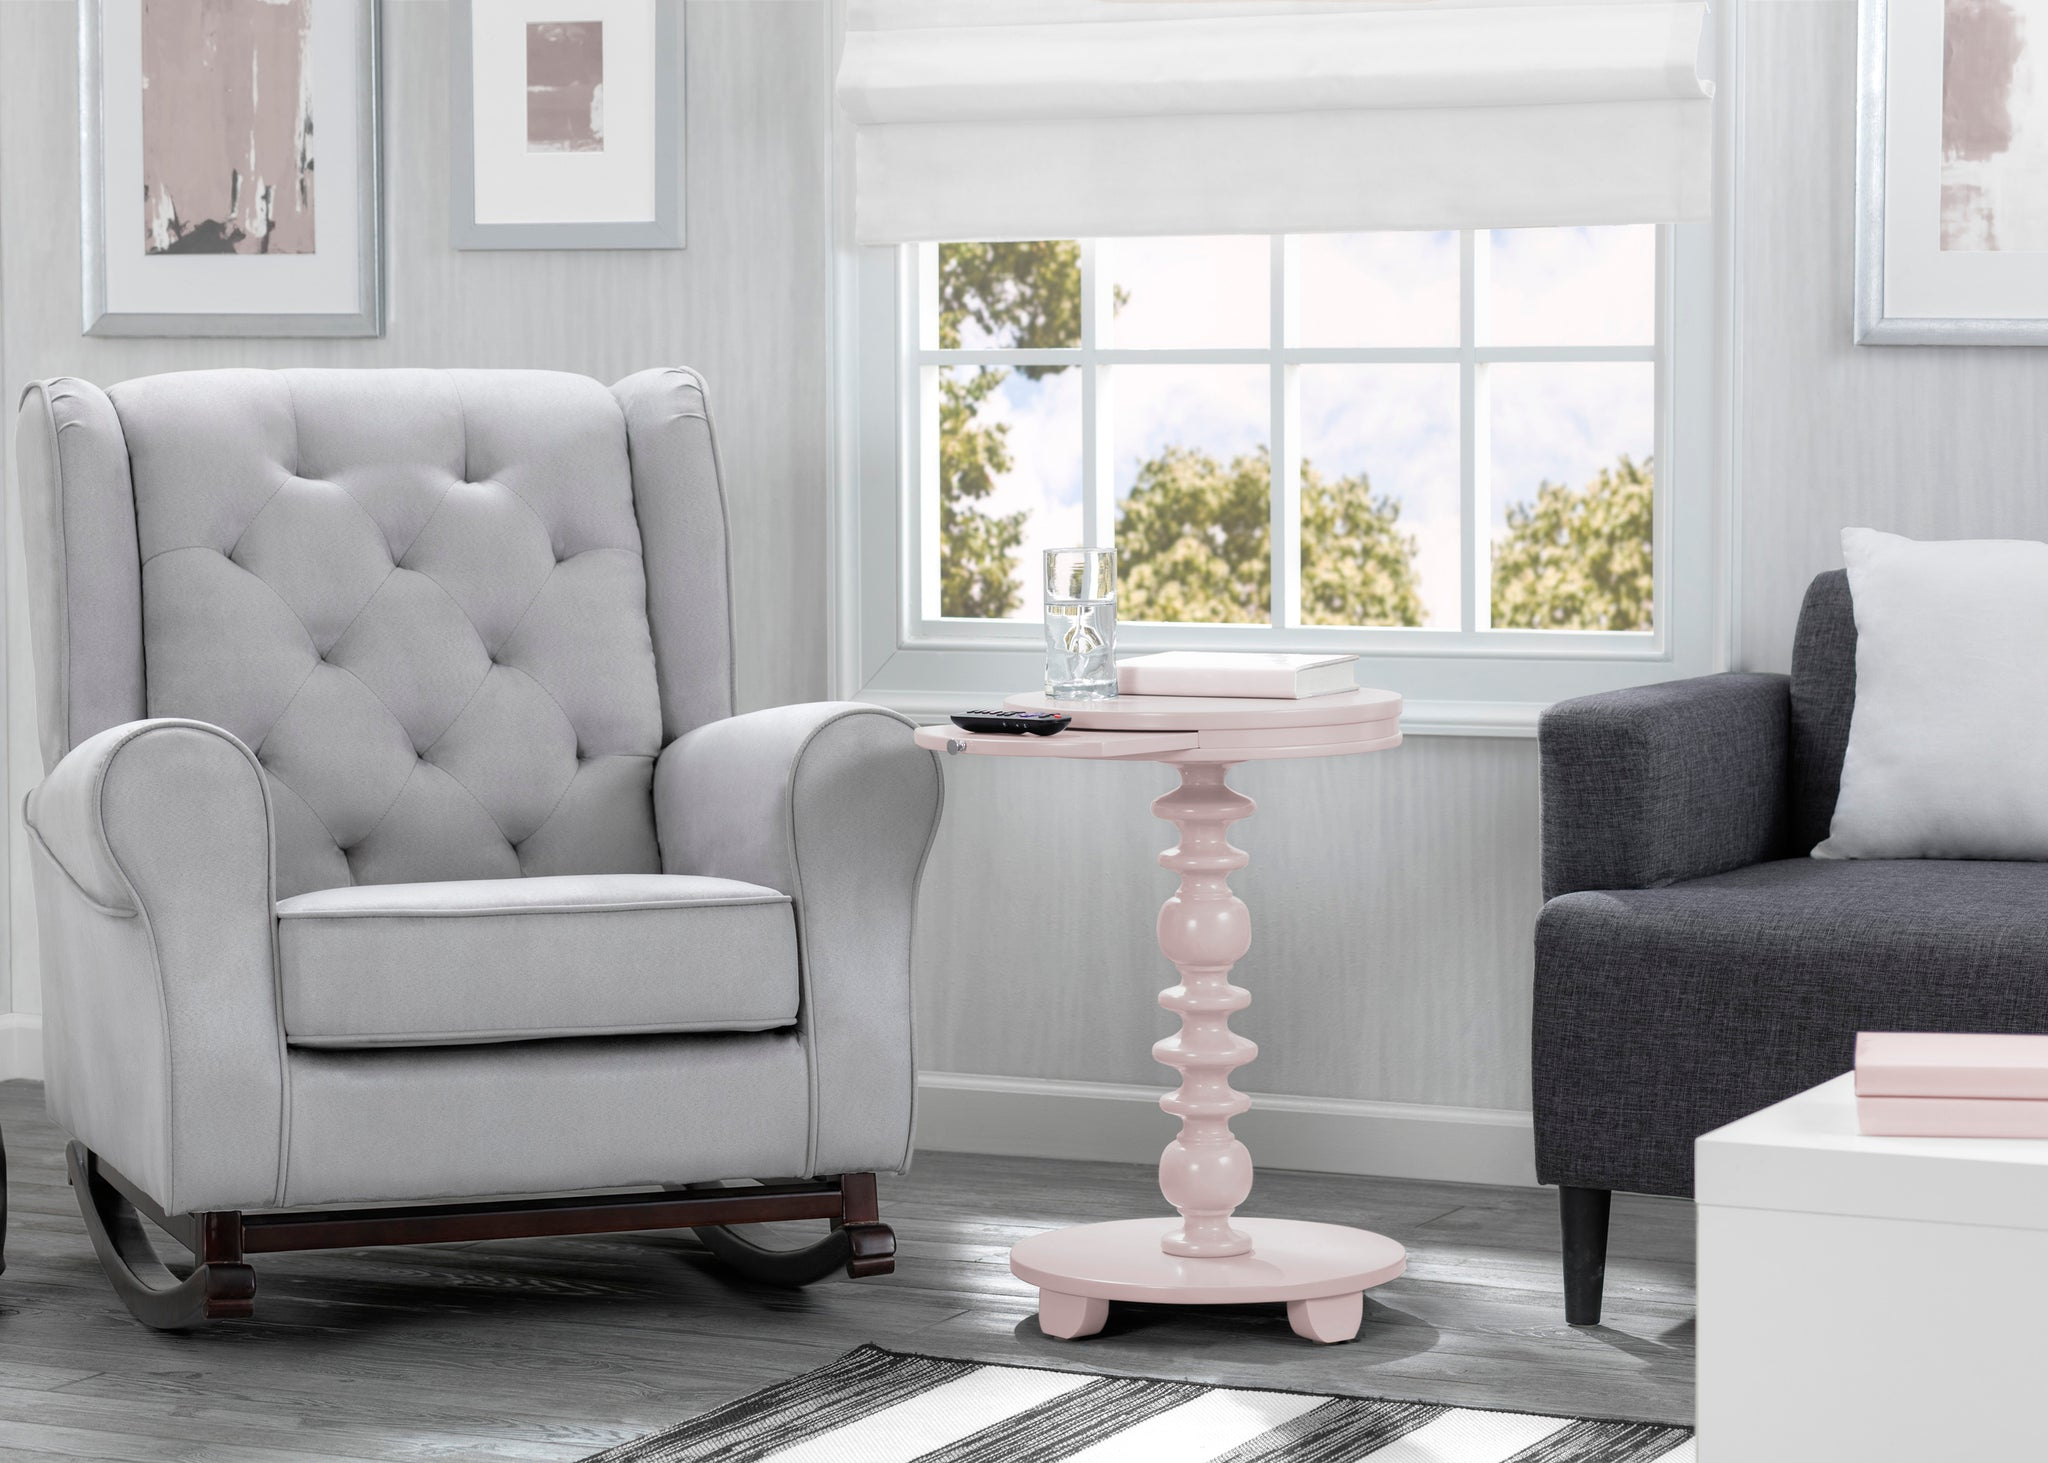 Delta Children Lotus Pink (936) Emery End/Side Table (531460), Living Room Shot, e2e